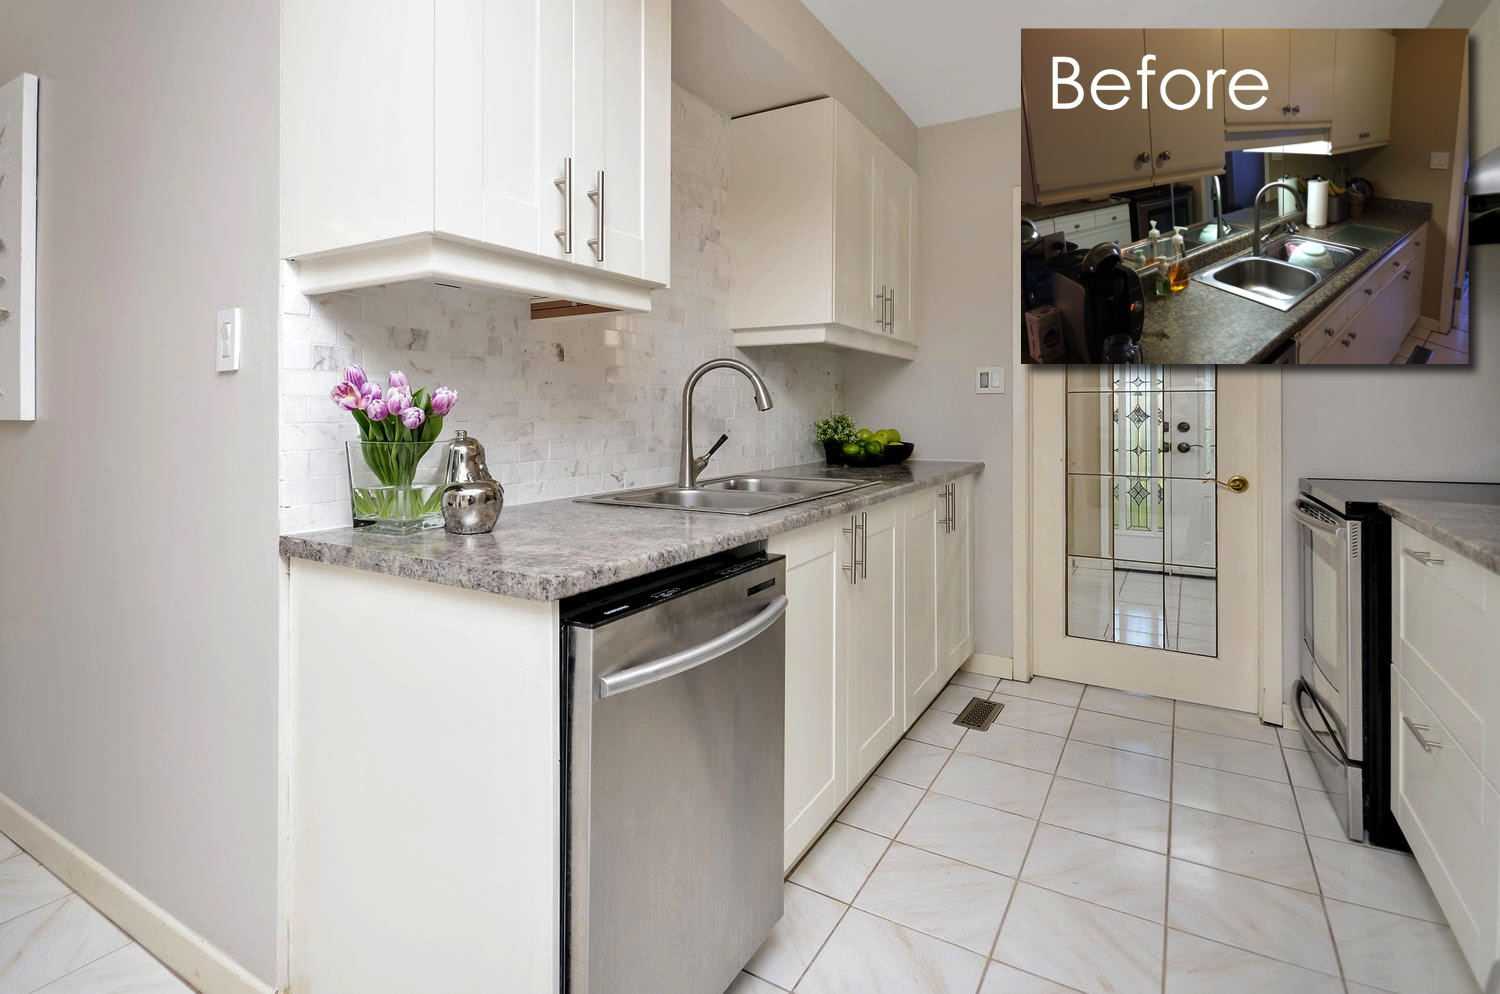 a kitchen case study before and after